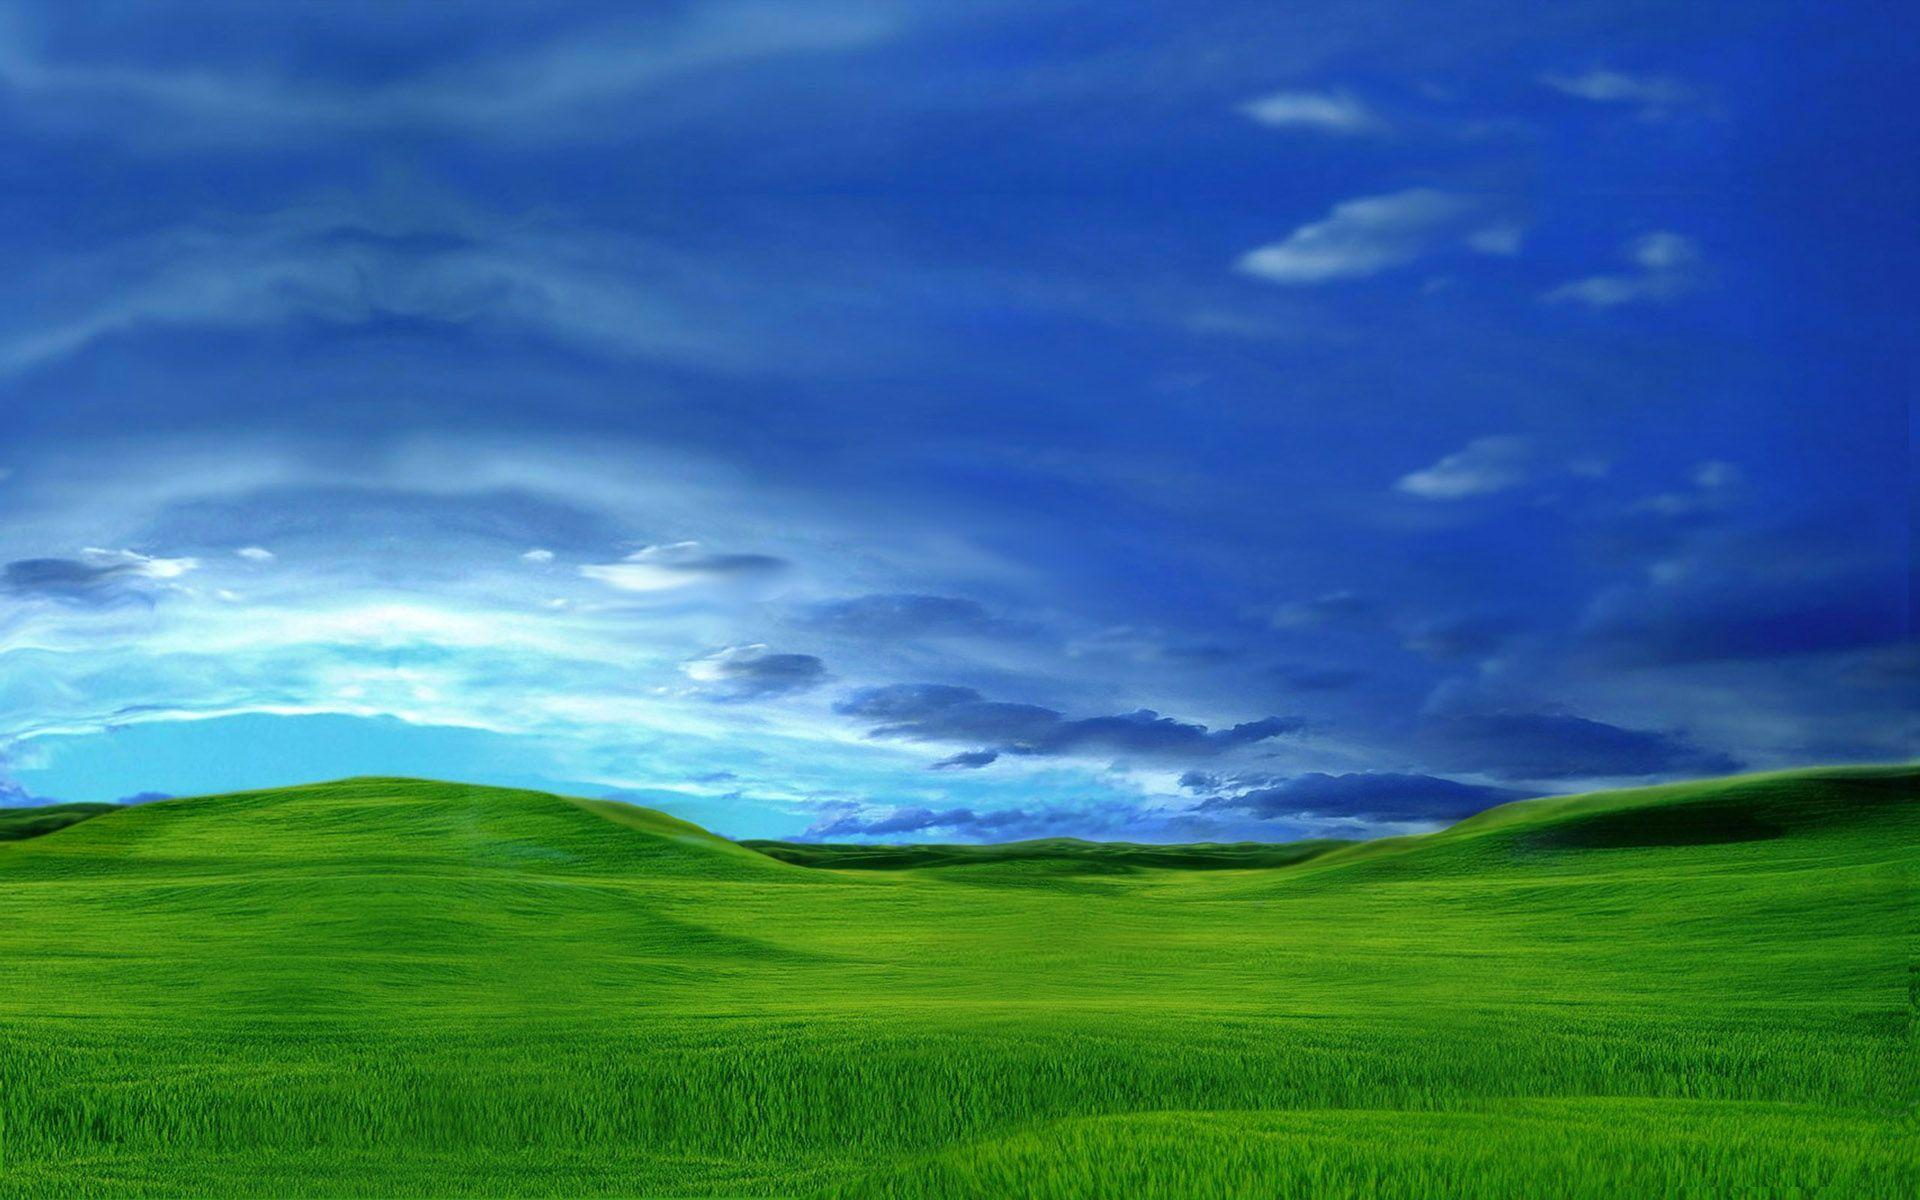 wallpapers for windows xp desktop wallpaper nature